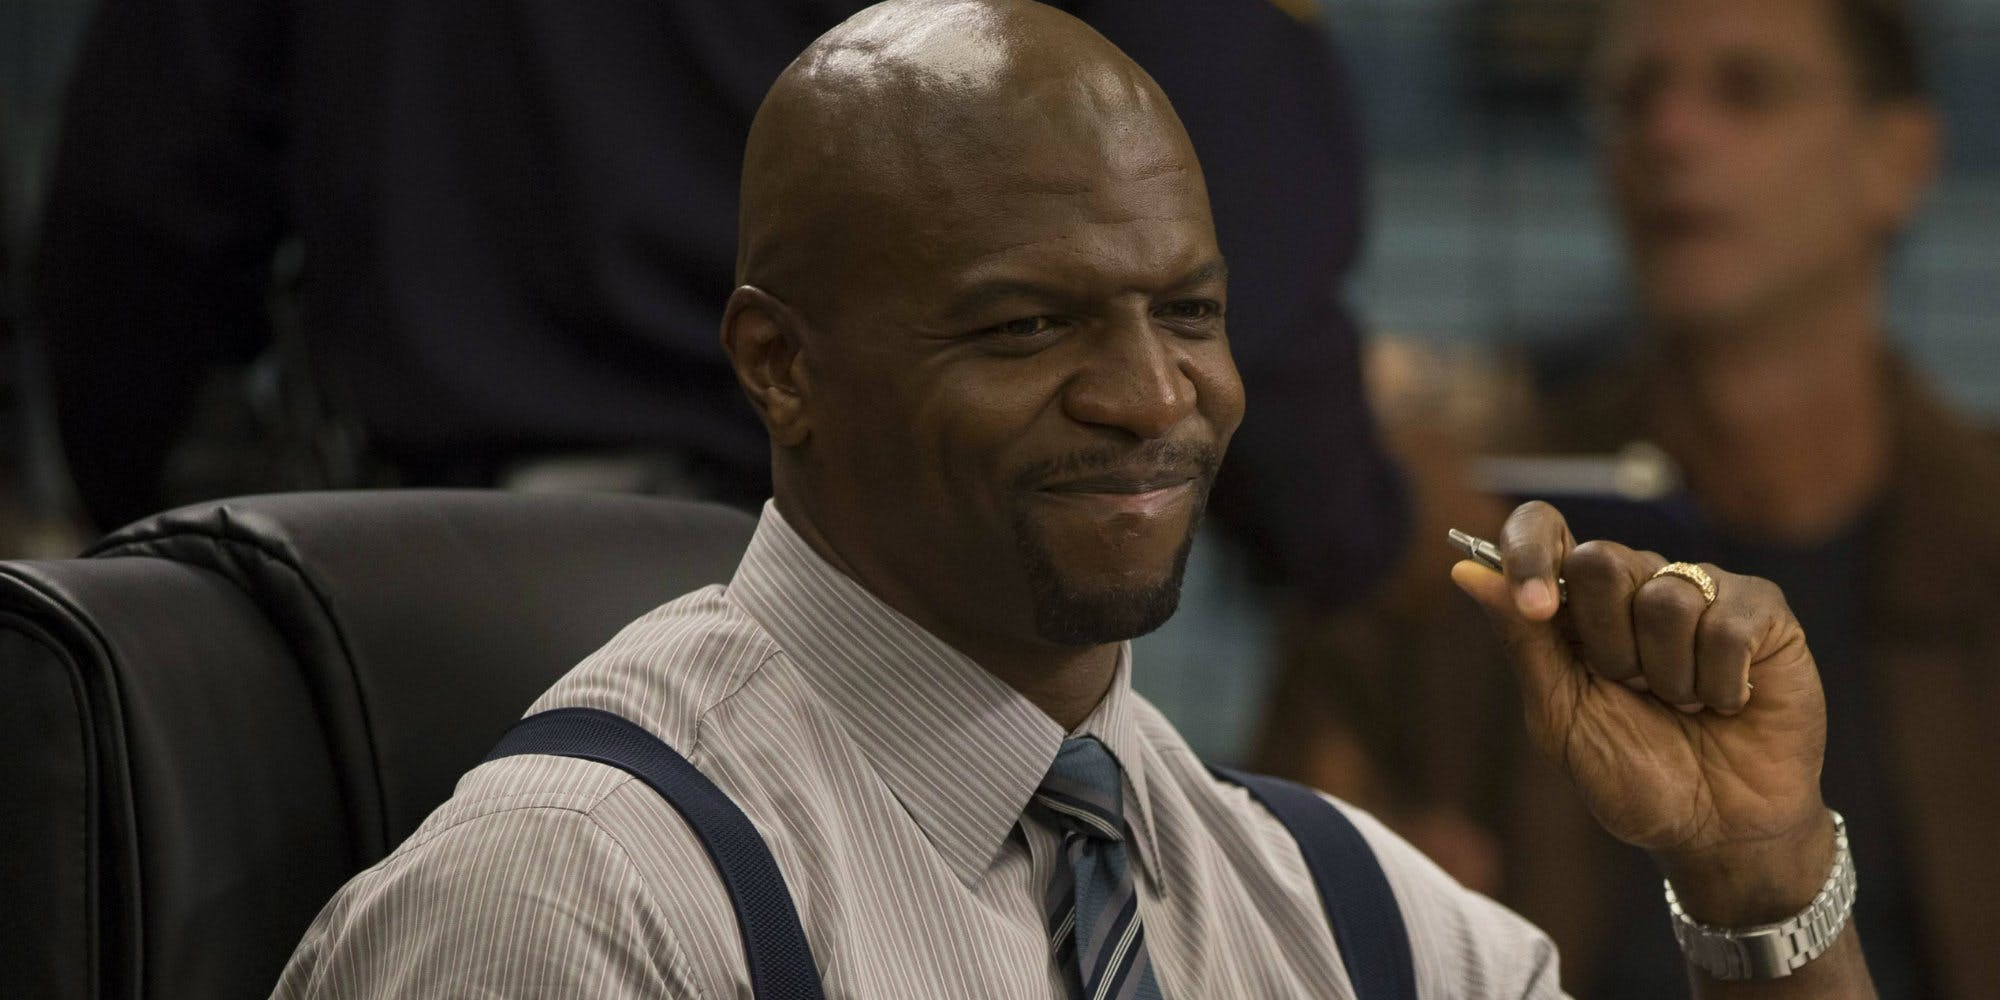 Terry Crews has shown interest in becoming King Triton